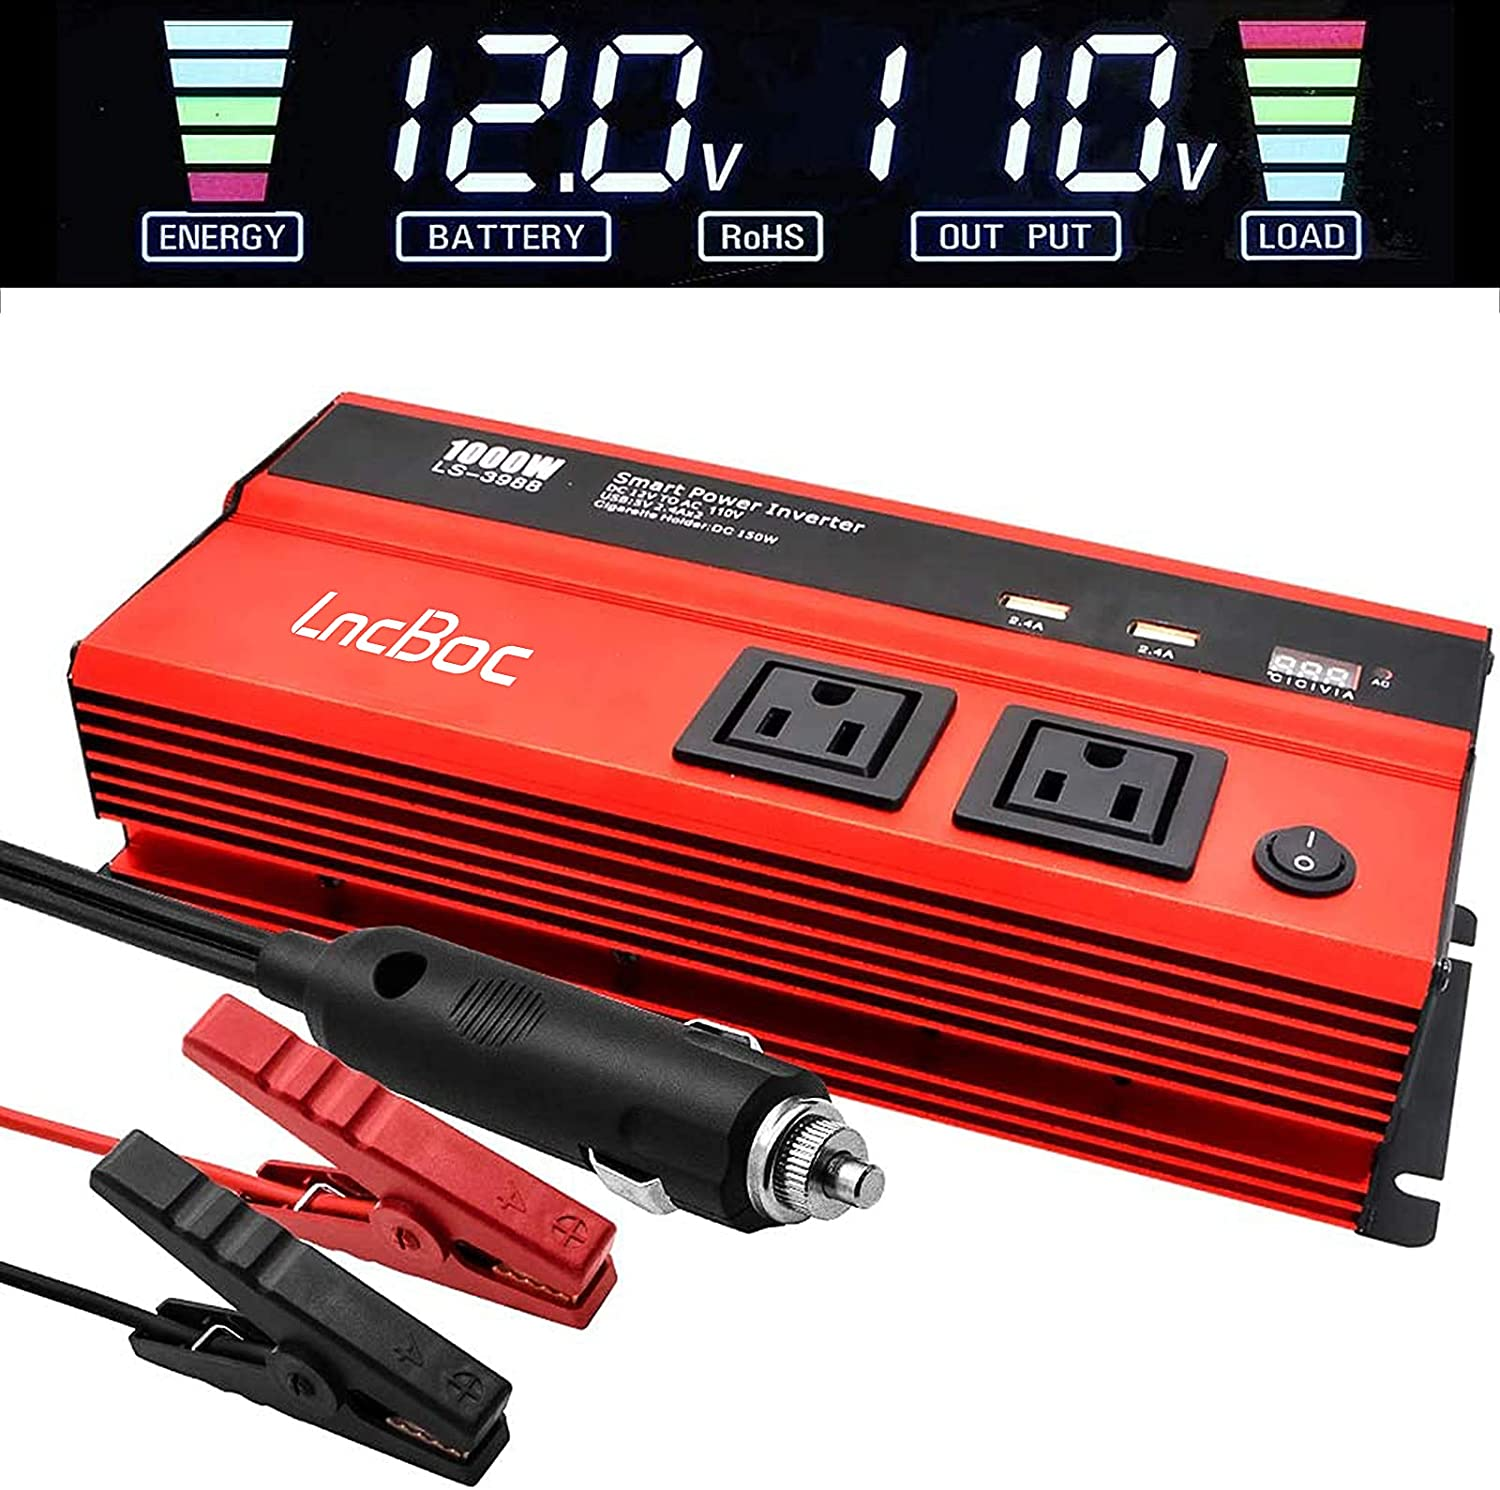 LncBoc 1000 Watt Inverter for Car Power Converter LncBoc Dual Ac Outlets 12V Dc to 110V Ac Modified Sine Wave Inverter with USB Charger Battery Clips for Tablets, Laptop and Smartpho